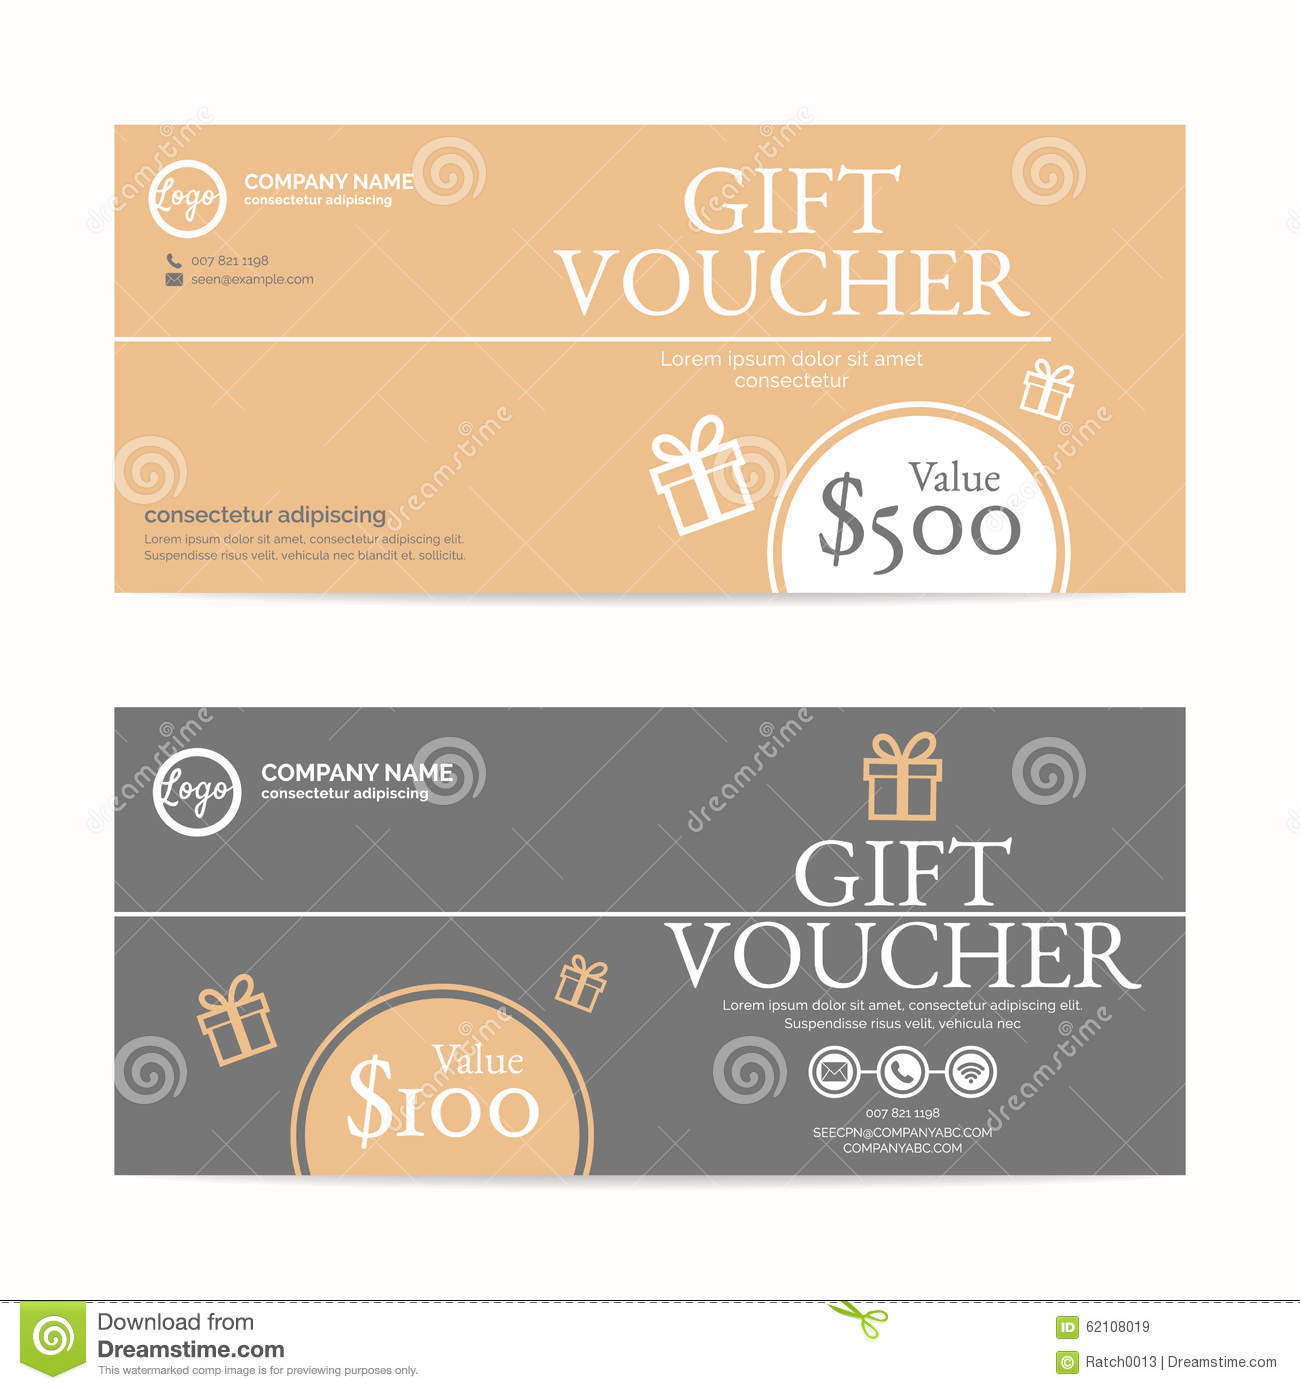 gift voucher template stock vector image of card bank 62108019. Black Bedroom Furniture Sets. Home Design Ideas